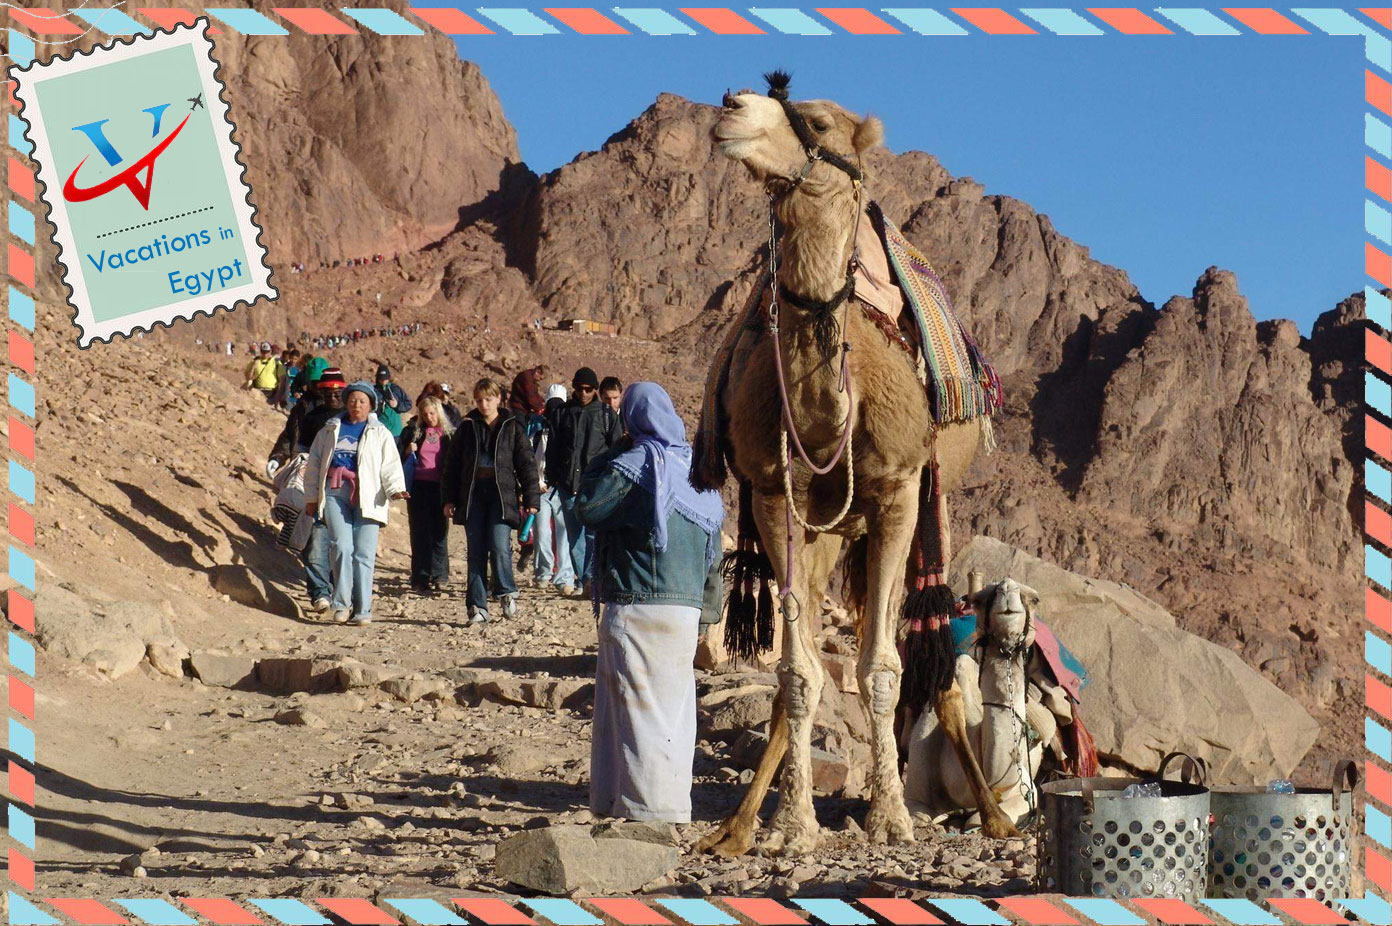 st catherine's monastery tours from sharm el sheikh